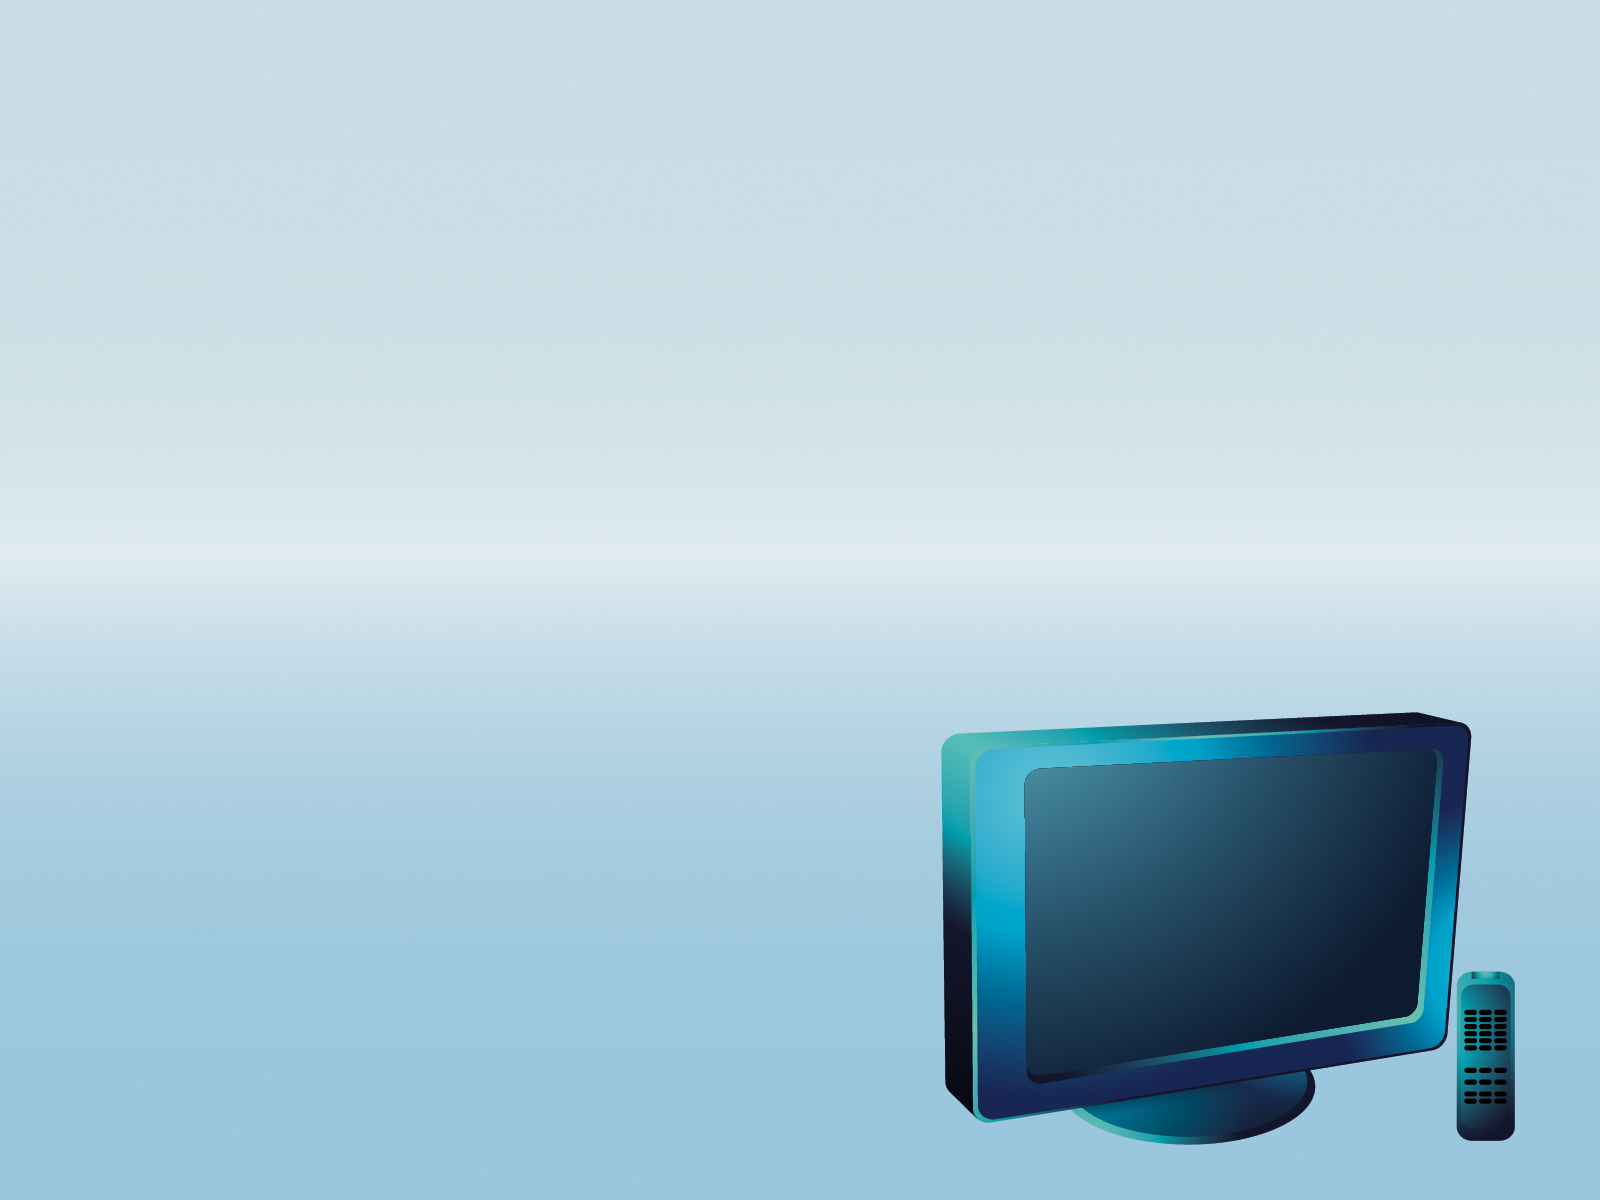 Blue Lcd Television High Tech Backgrounds Movie Tv HD Wallpapers Download Free Images Wallpaper [1000image.com]